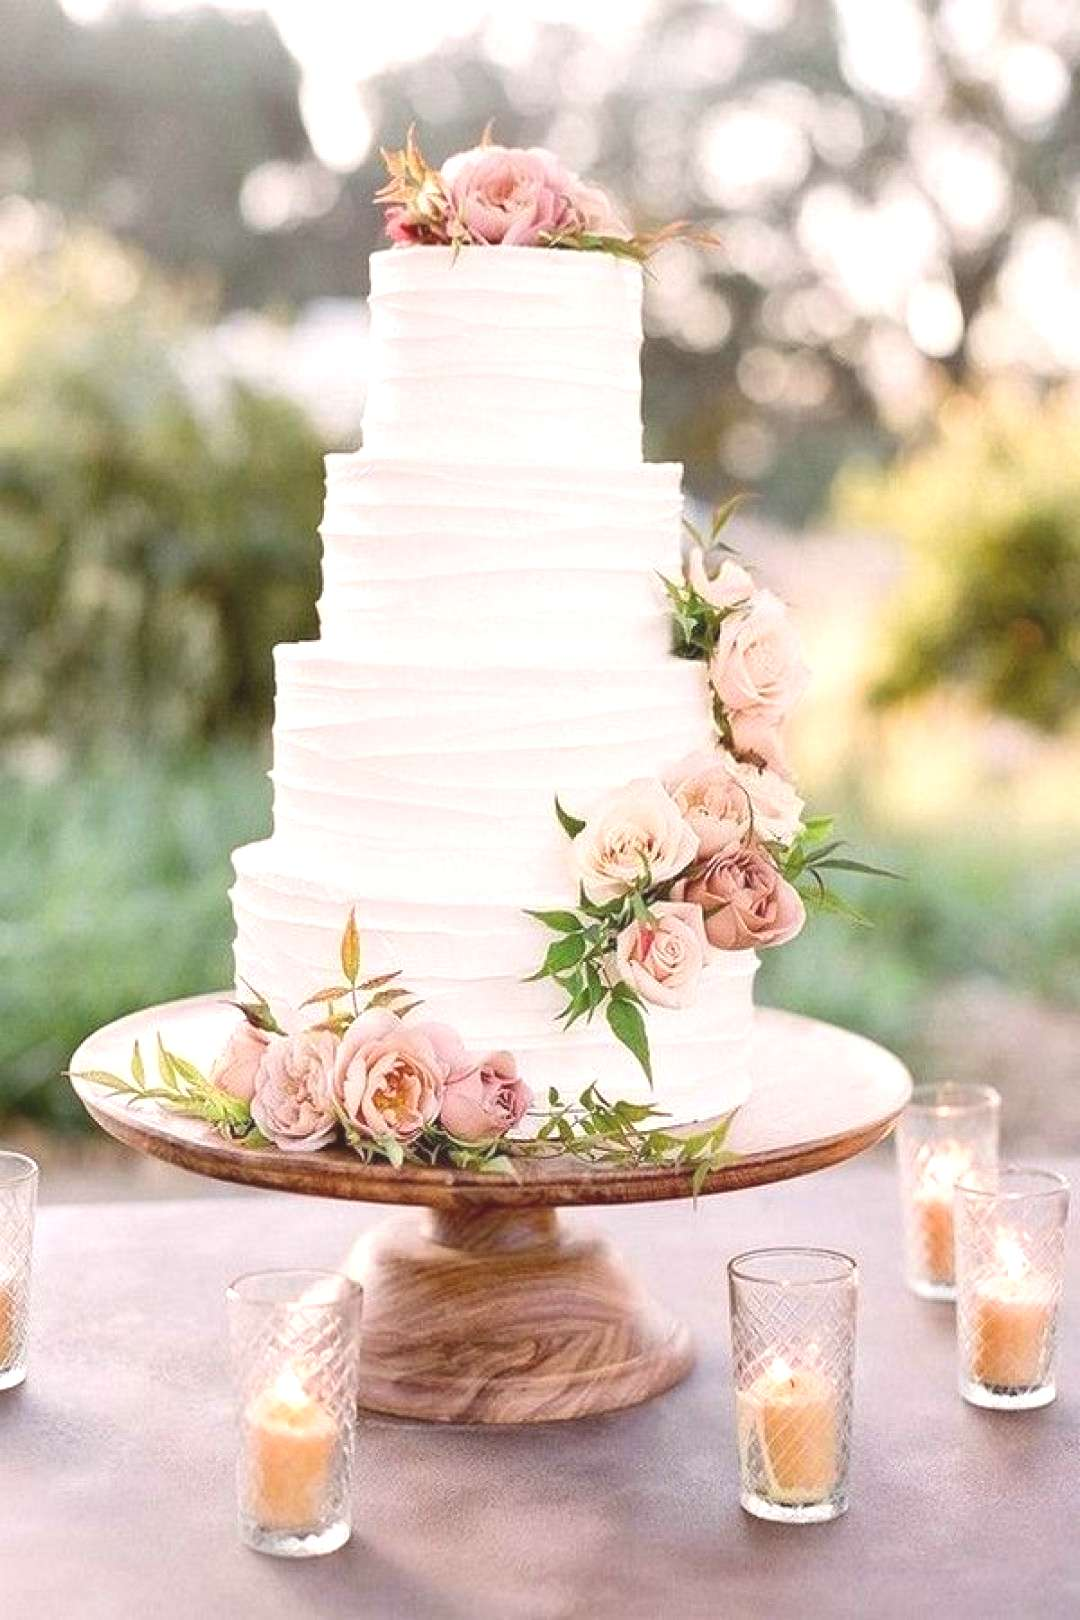 Top 20 Simple Pink Wedding Cakes for Spring Summer Weddings spring summer pink wedding cake ideas